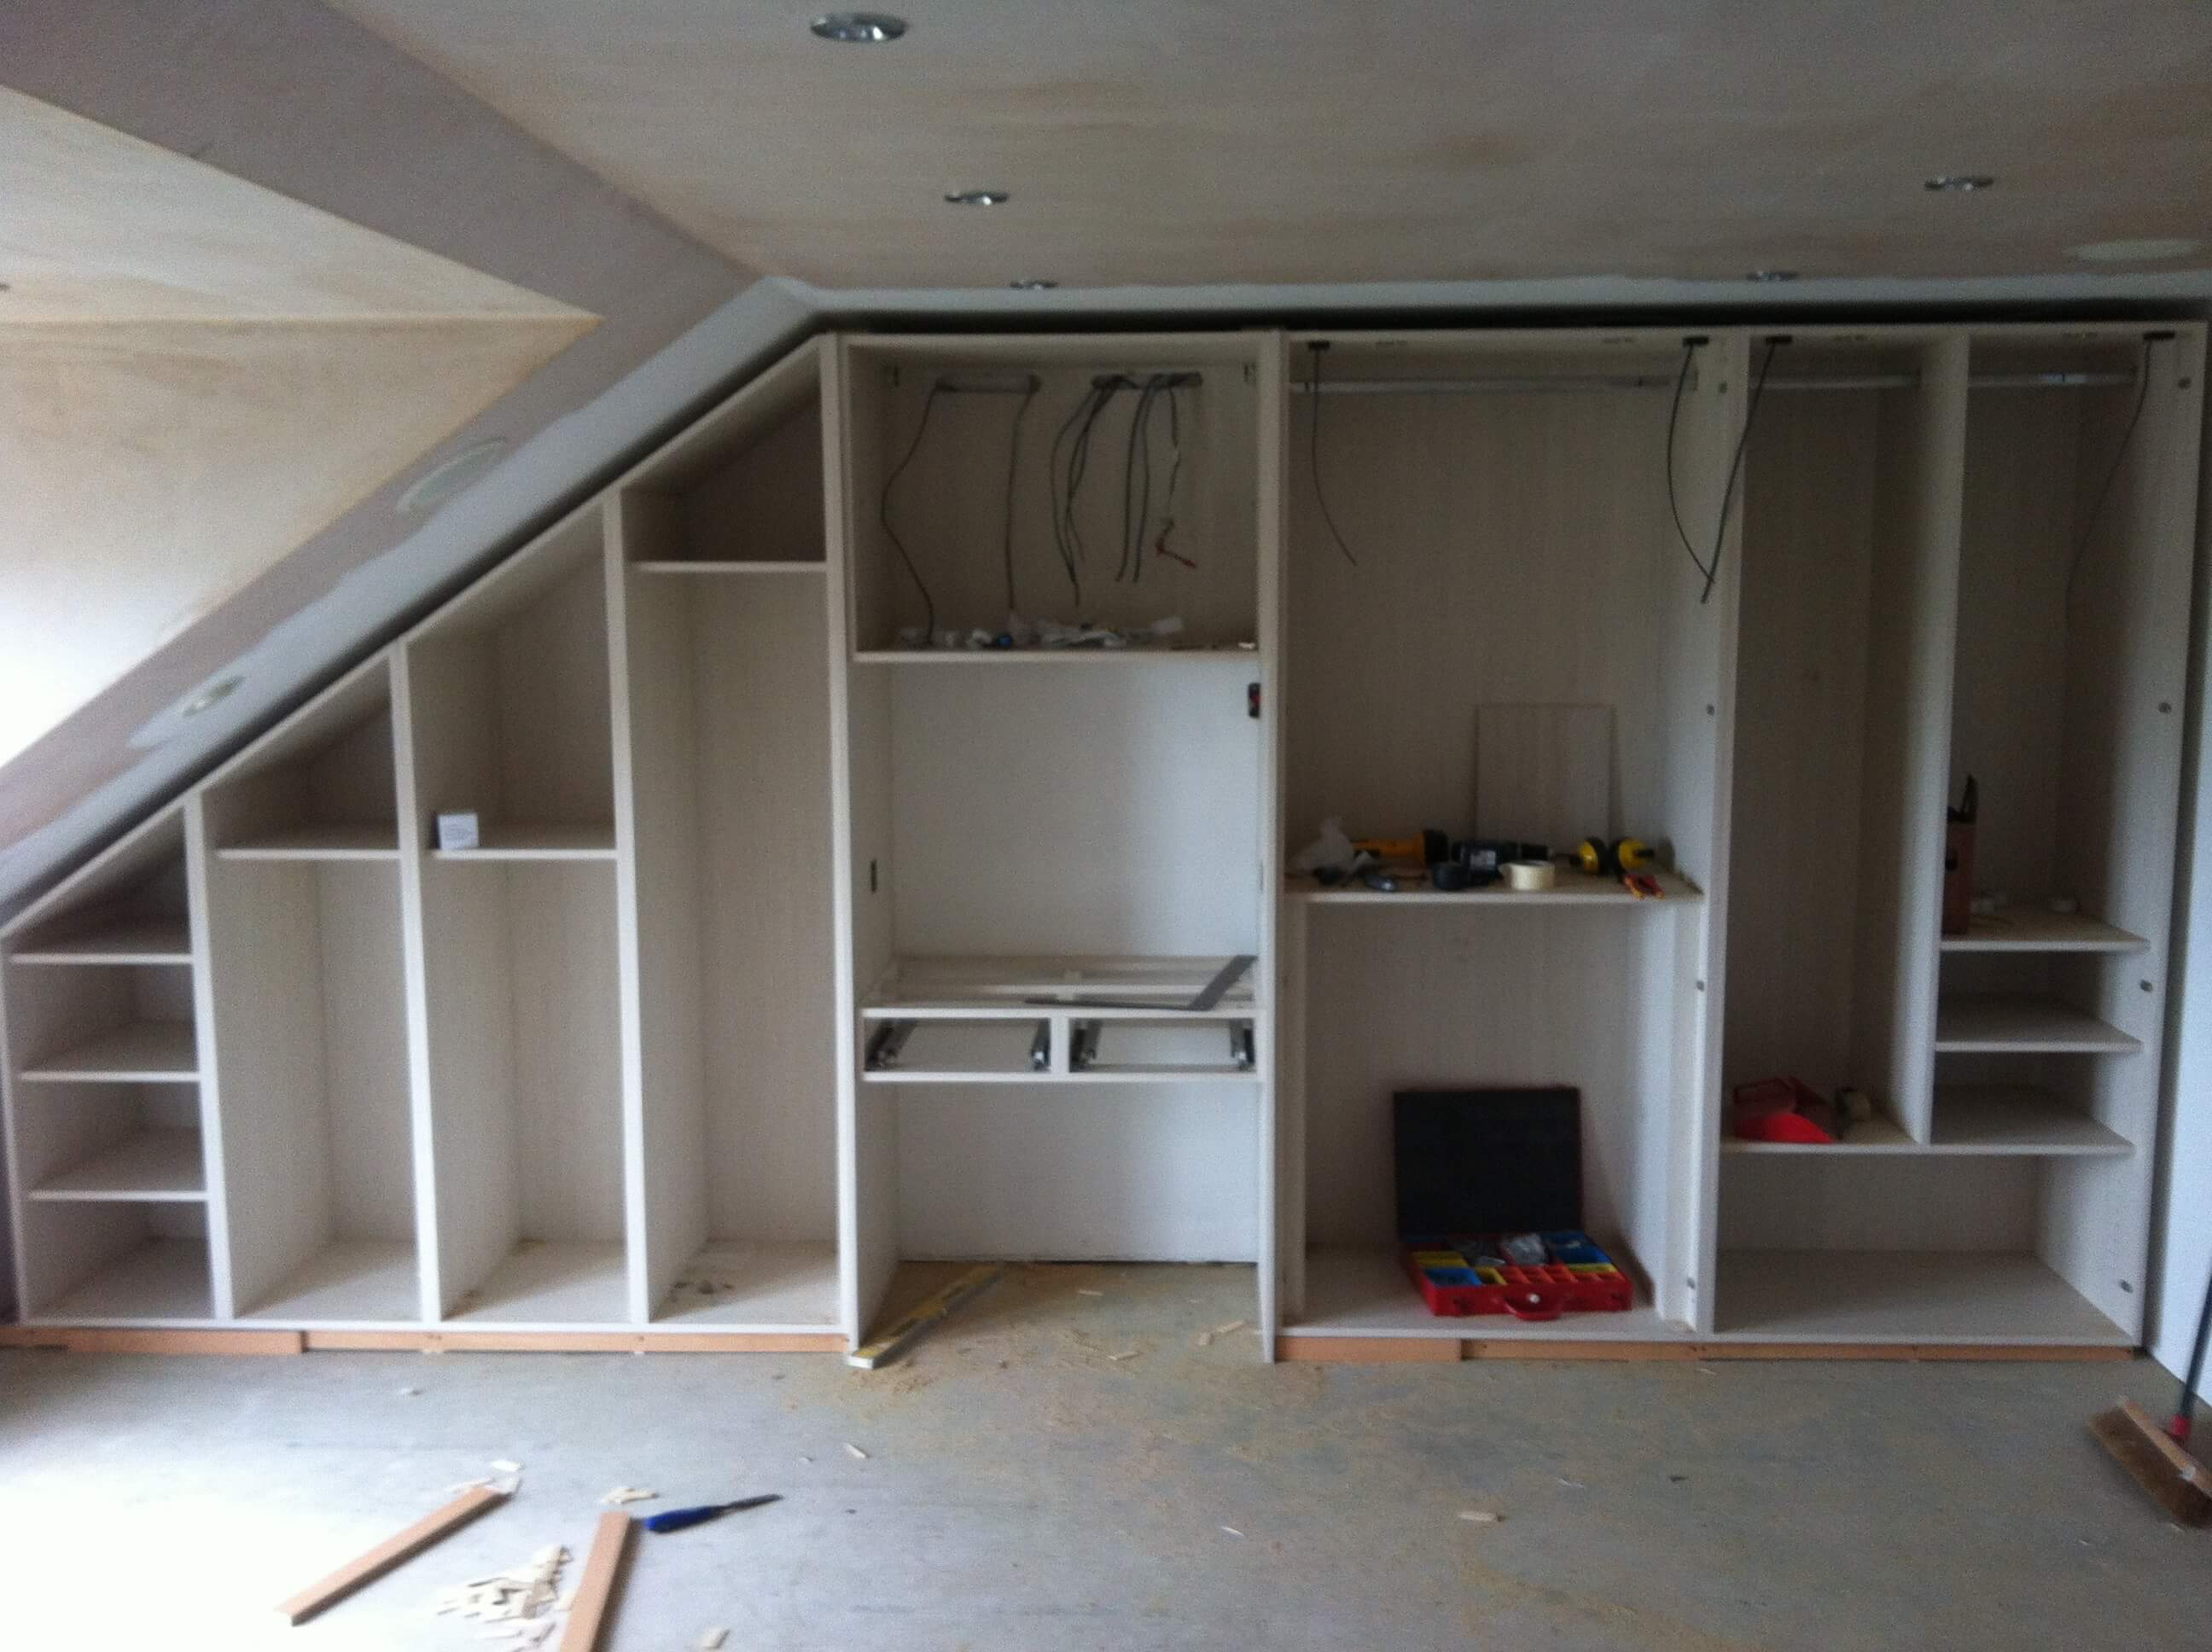 All Bedroom units installed